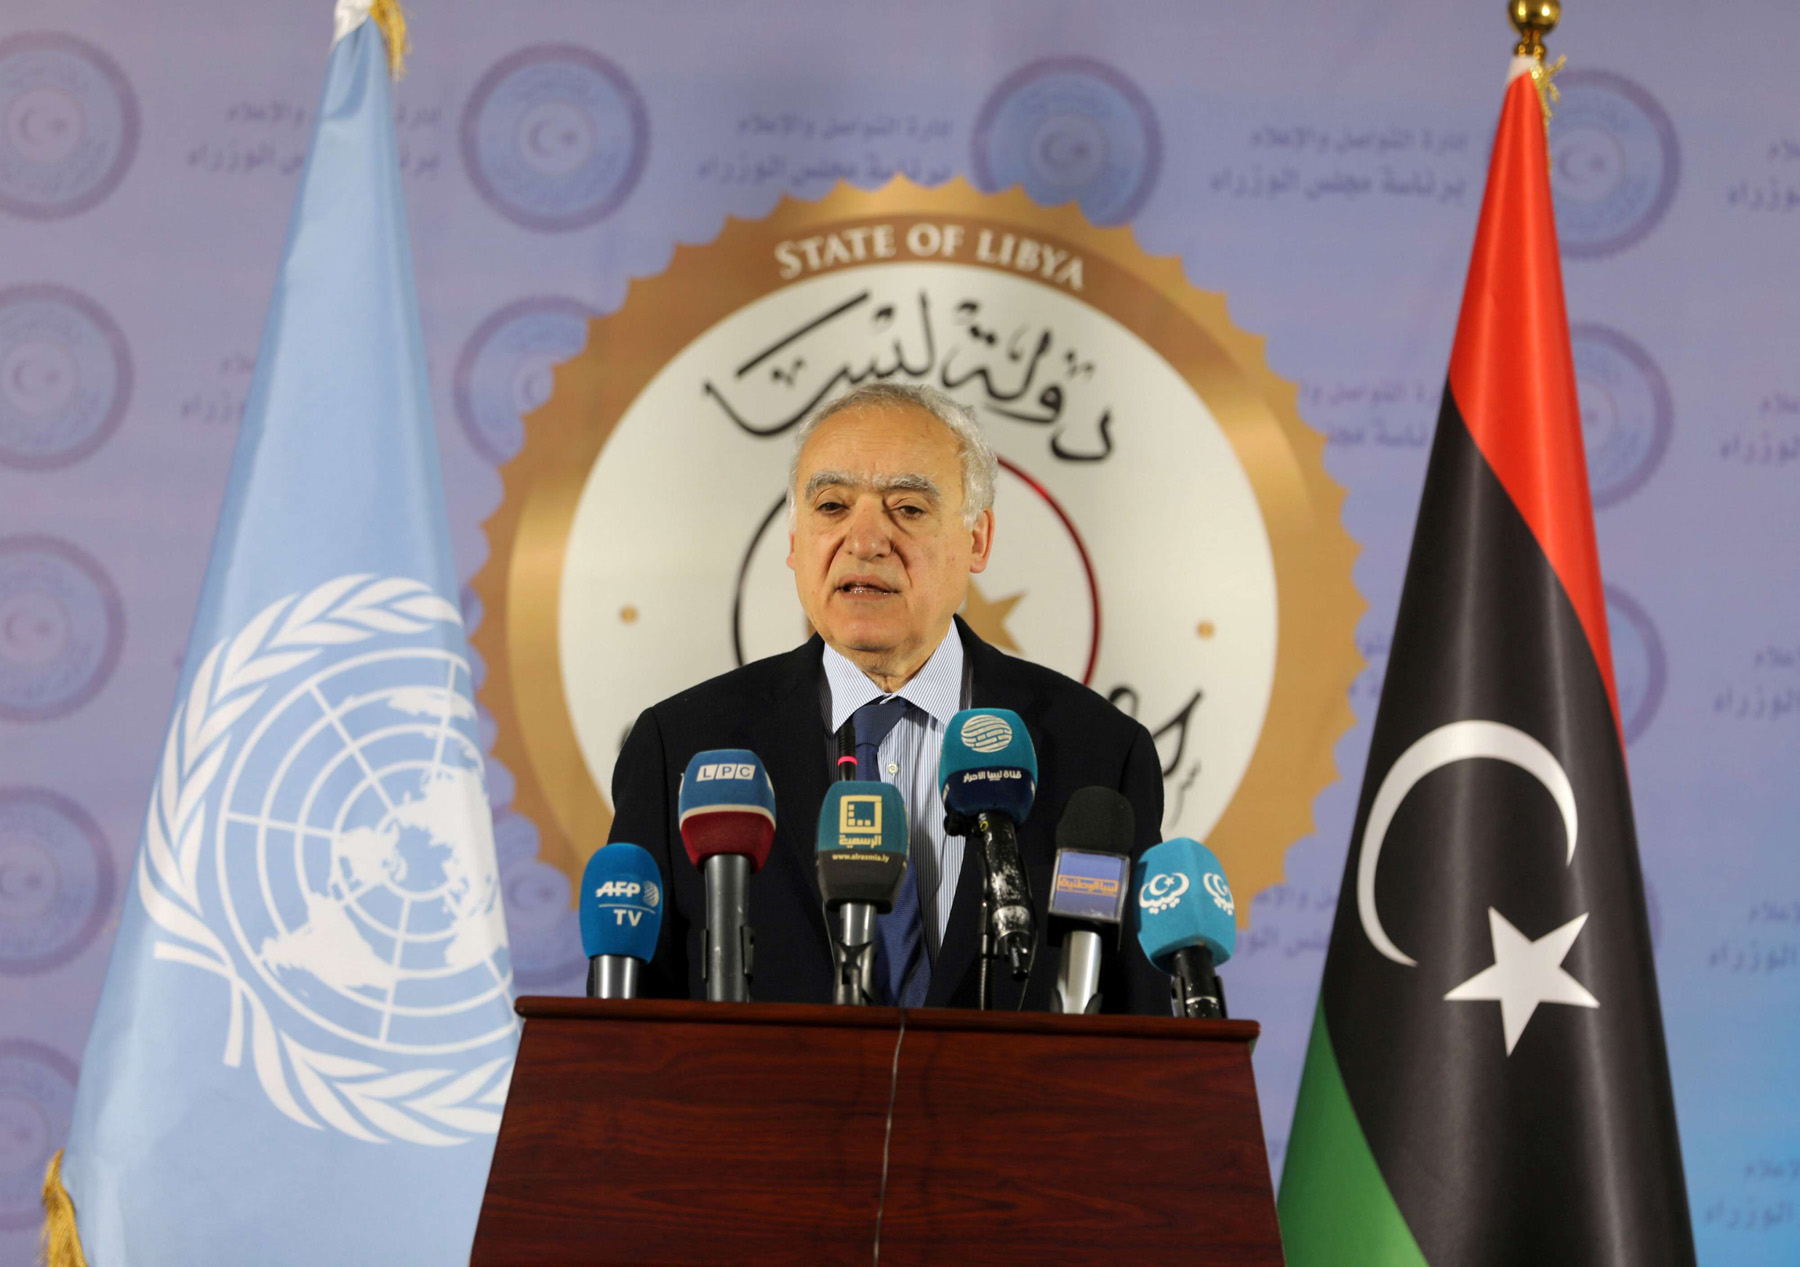 In a tight spot. A file picture shows UN Special Envoy to Libya Ghassan Salame speaking during a news conference in Tripoli.  (Reuters)